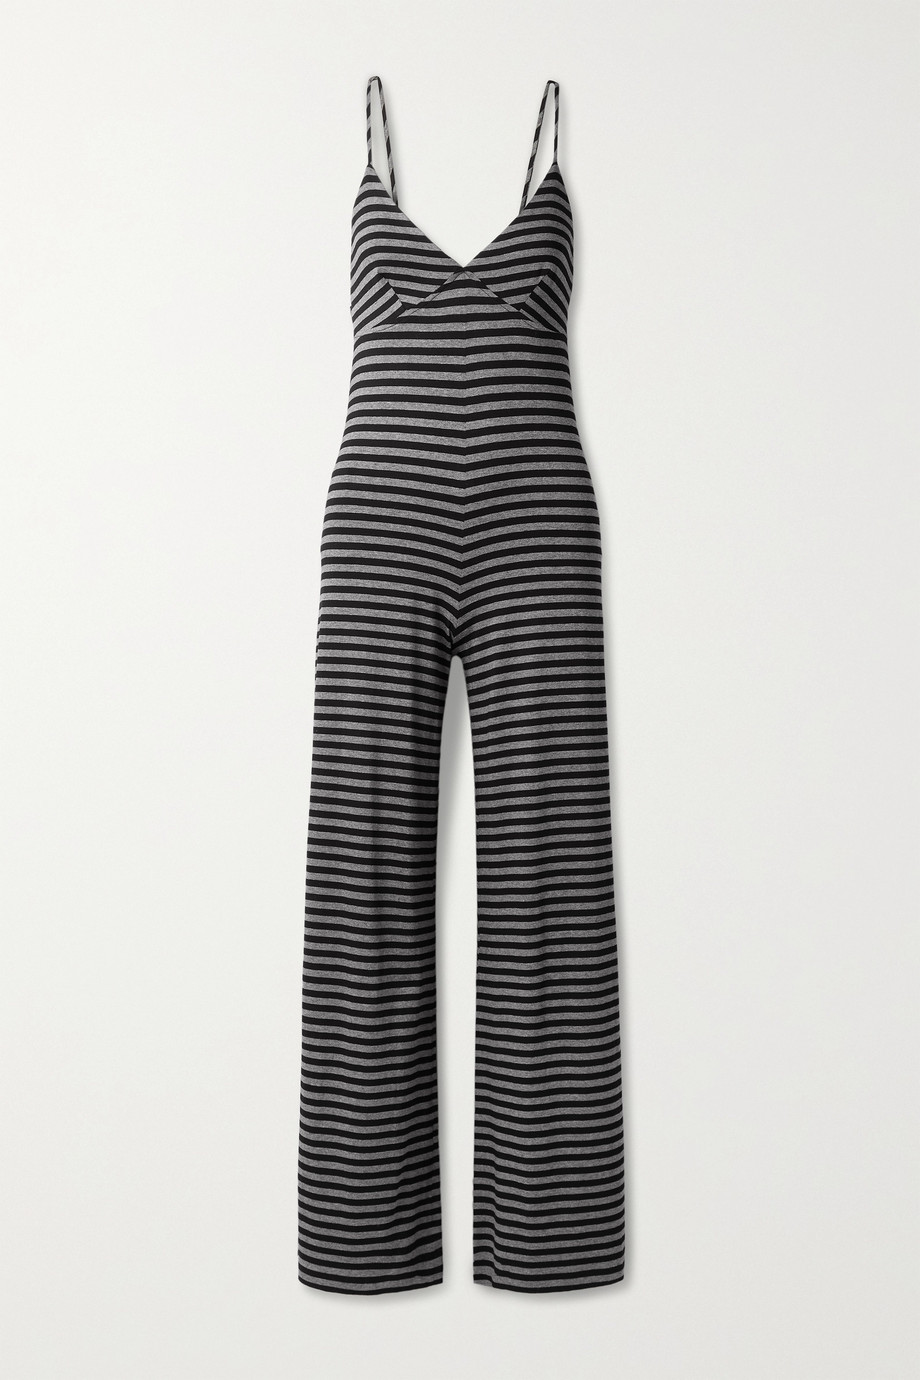 Norma Kamali Slip striped stretch-jersey jumpsuit